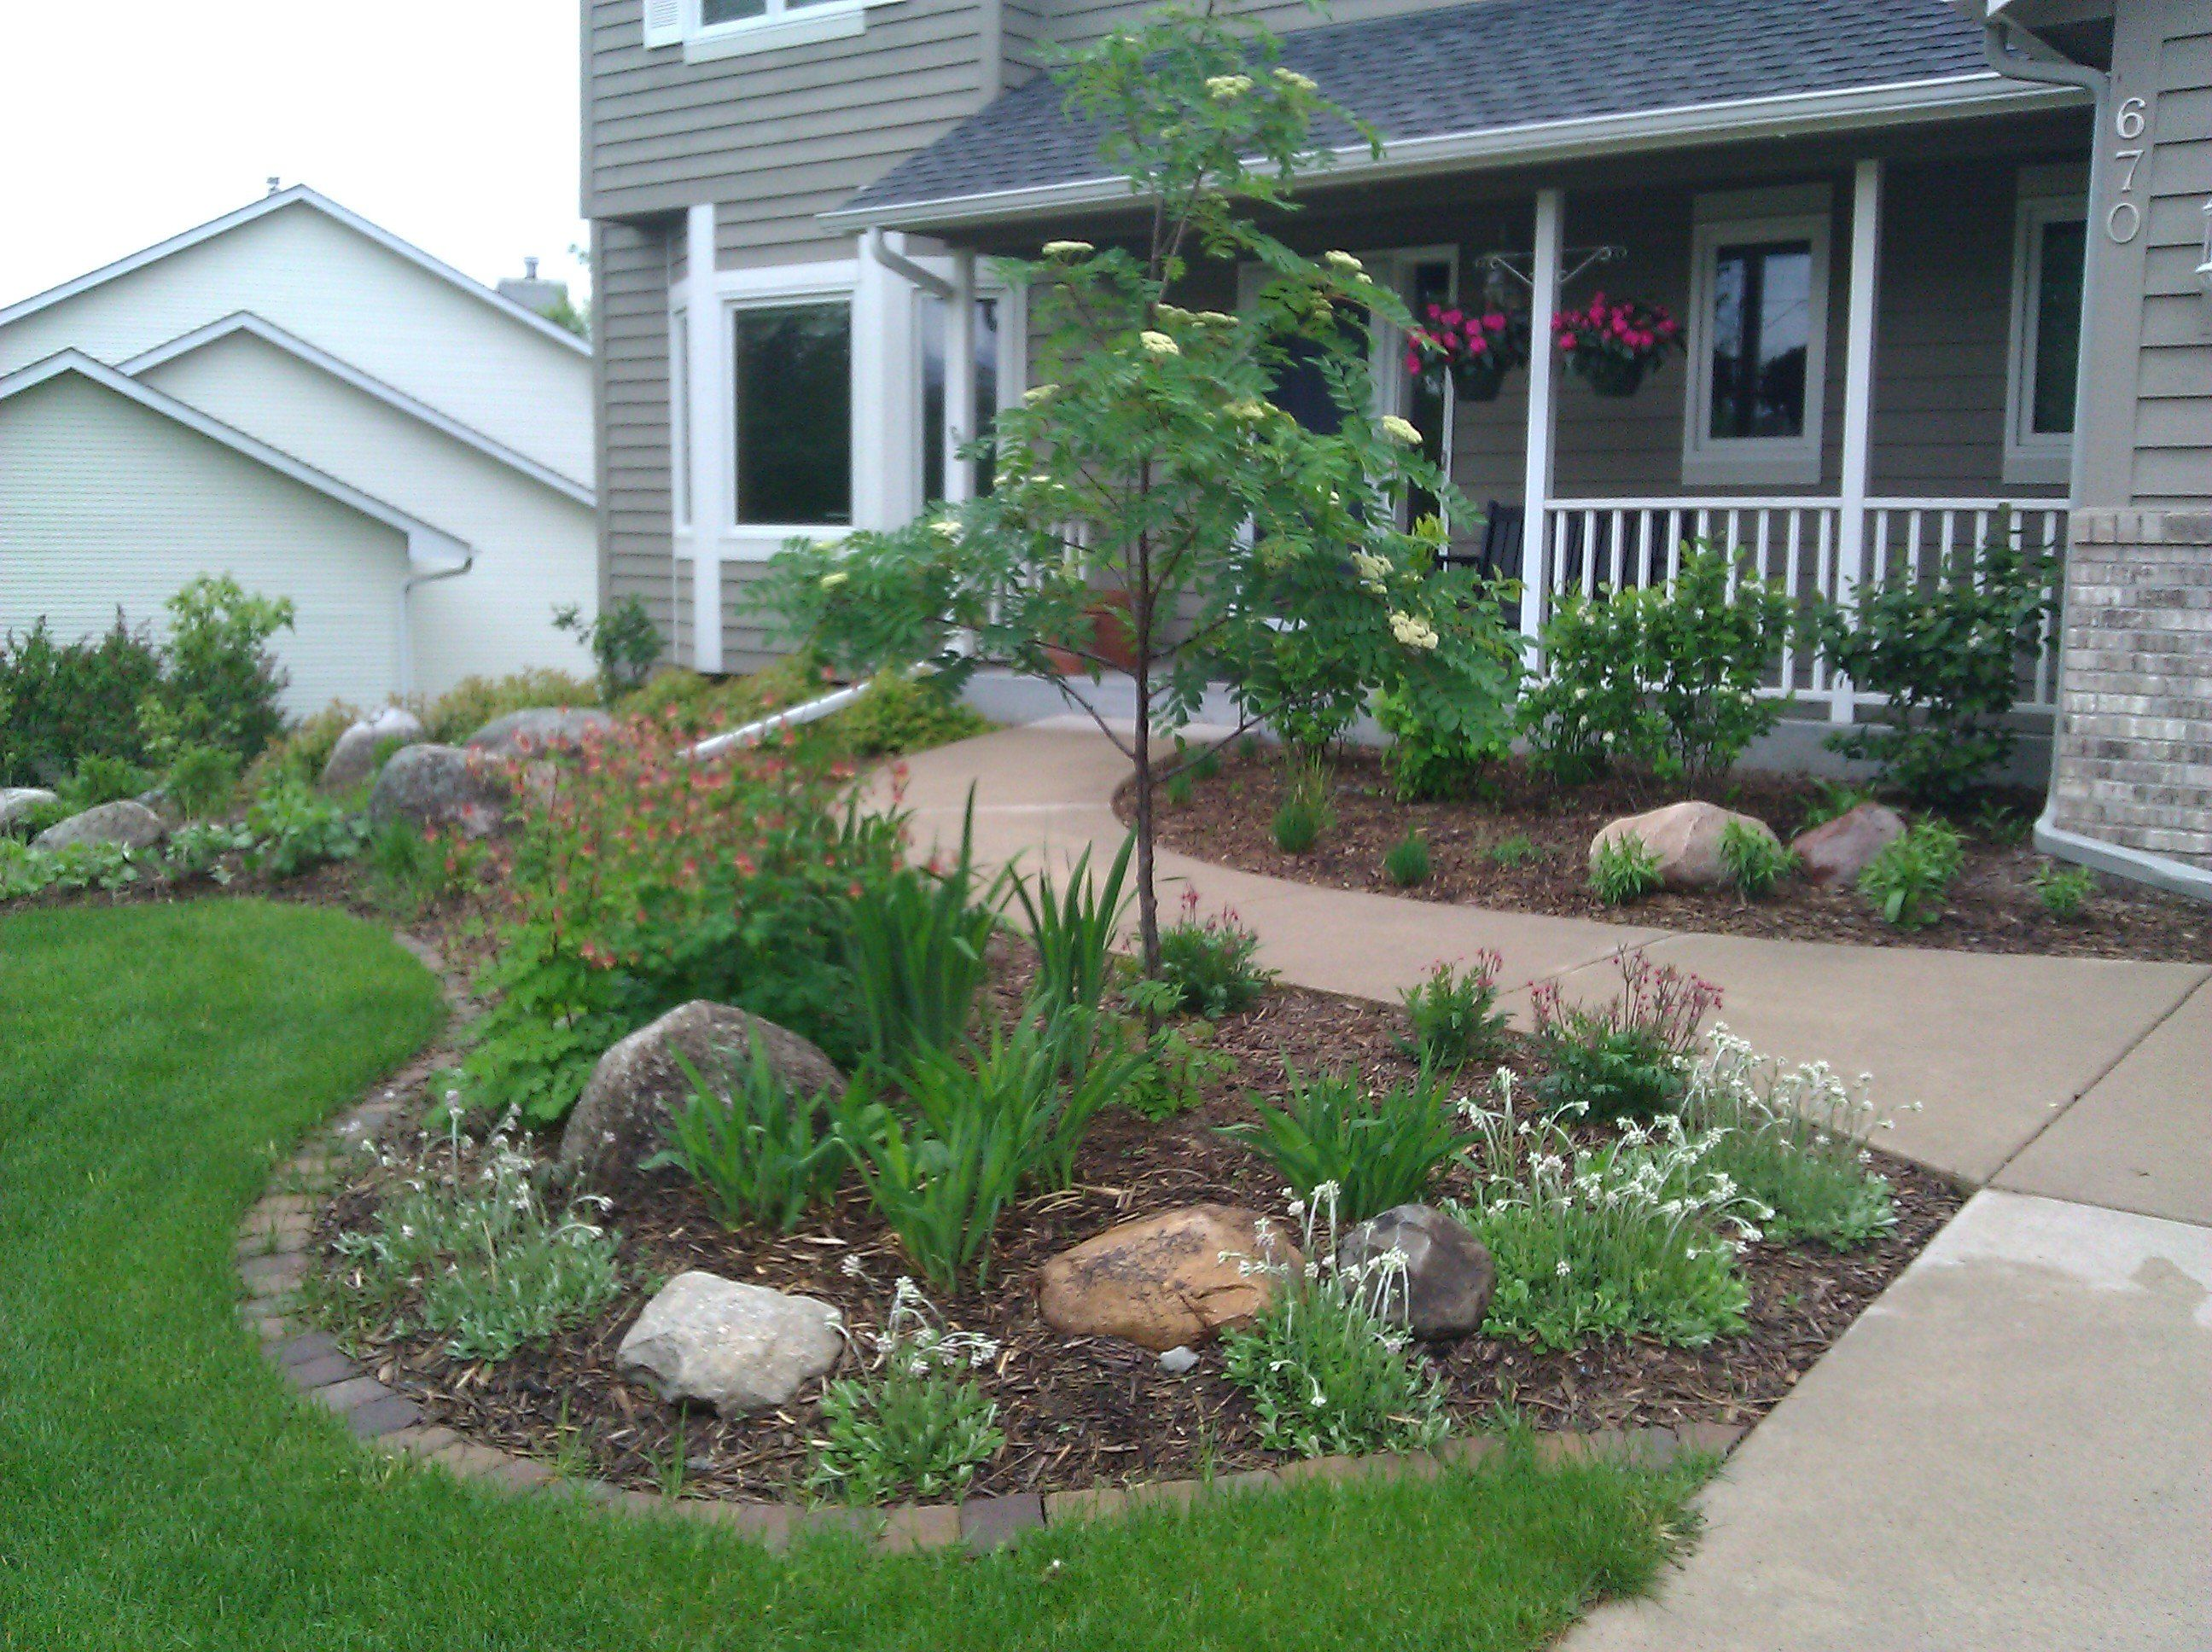 garden and patio small front yard landscaping house design with various plants flowers trees concrete walkway rocks and green grass around house ideas - Flower Garden Ideas Minnesota